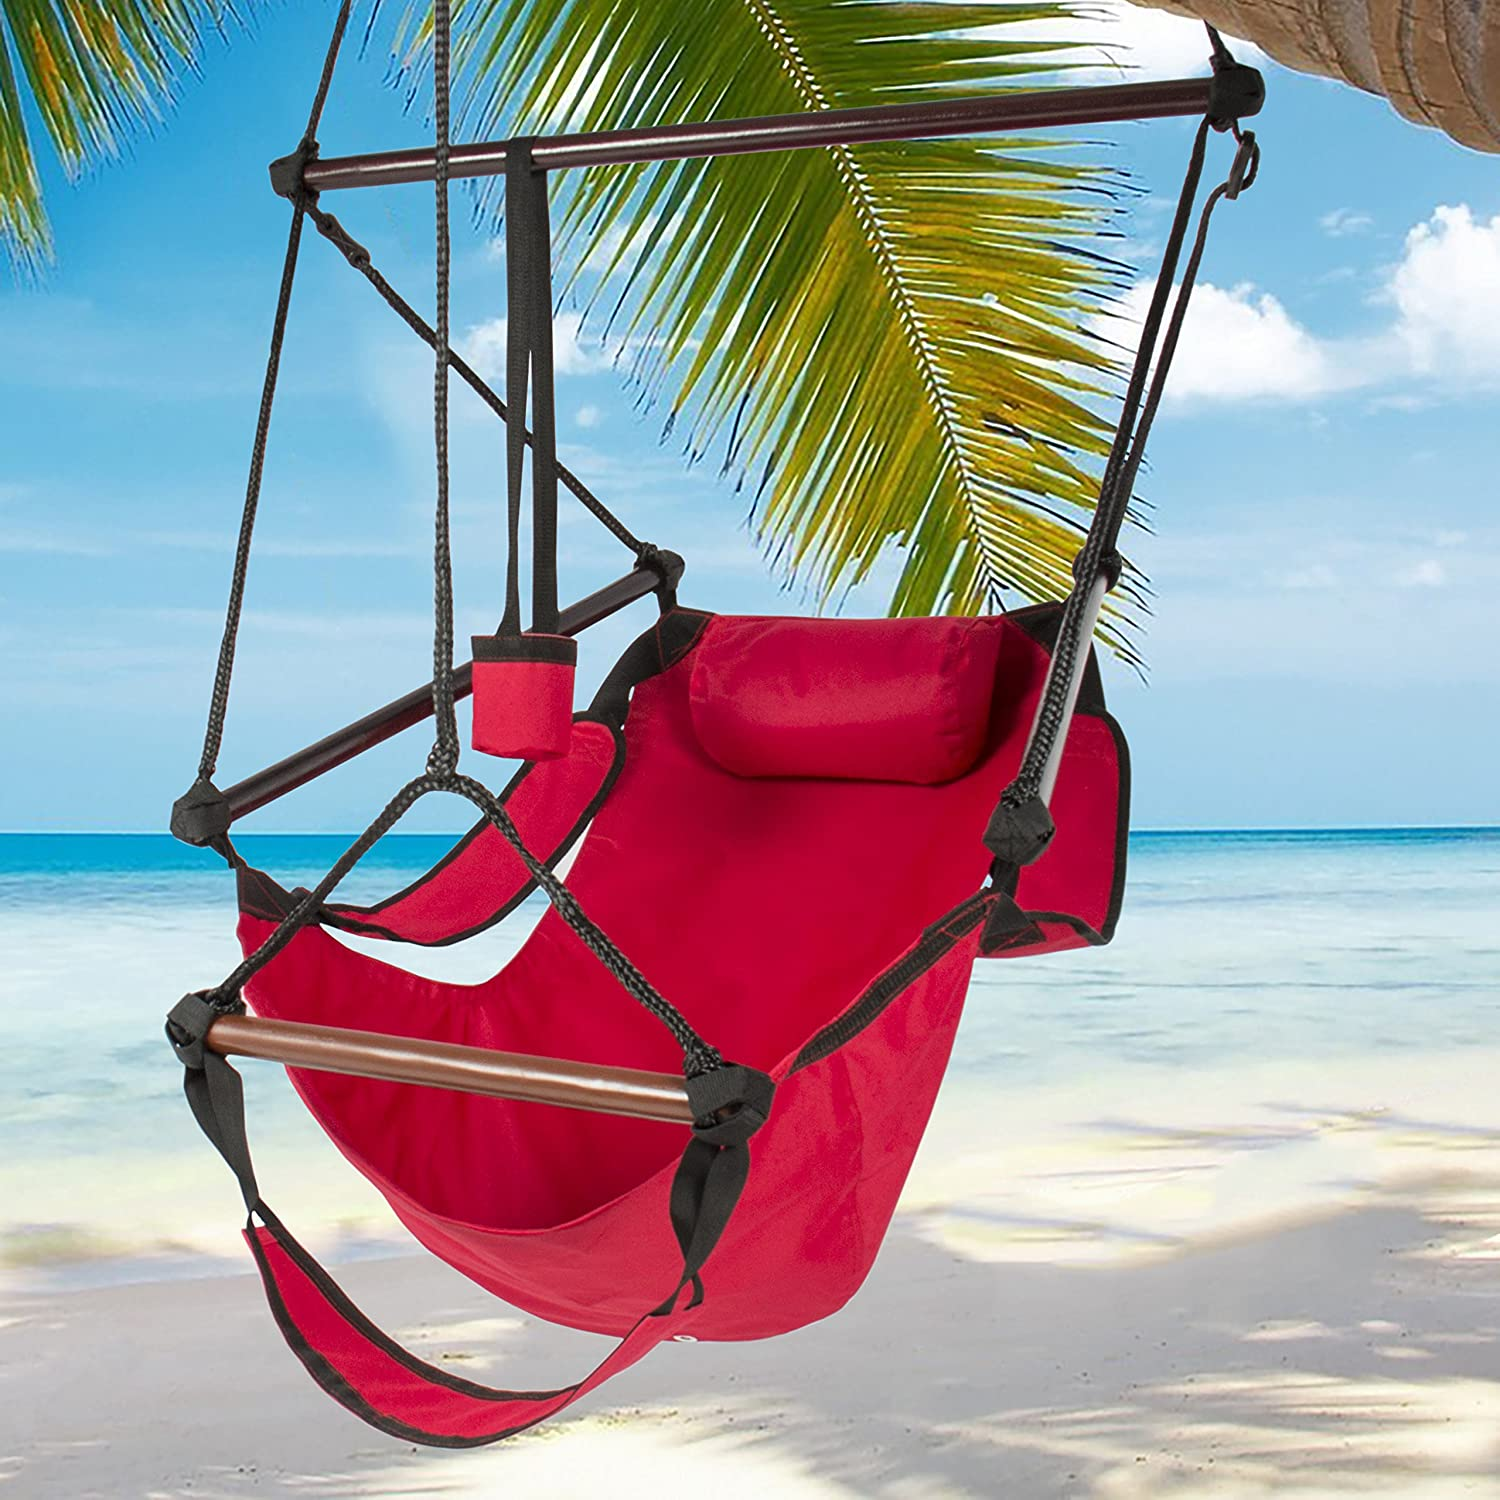 Amazon.com: Best Choice Products Hammock Hanging Chair Air Deluxe Outdoor  Chair Solid Wood 250lb Red: Garden U0026 Outdoor